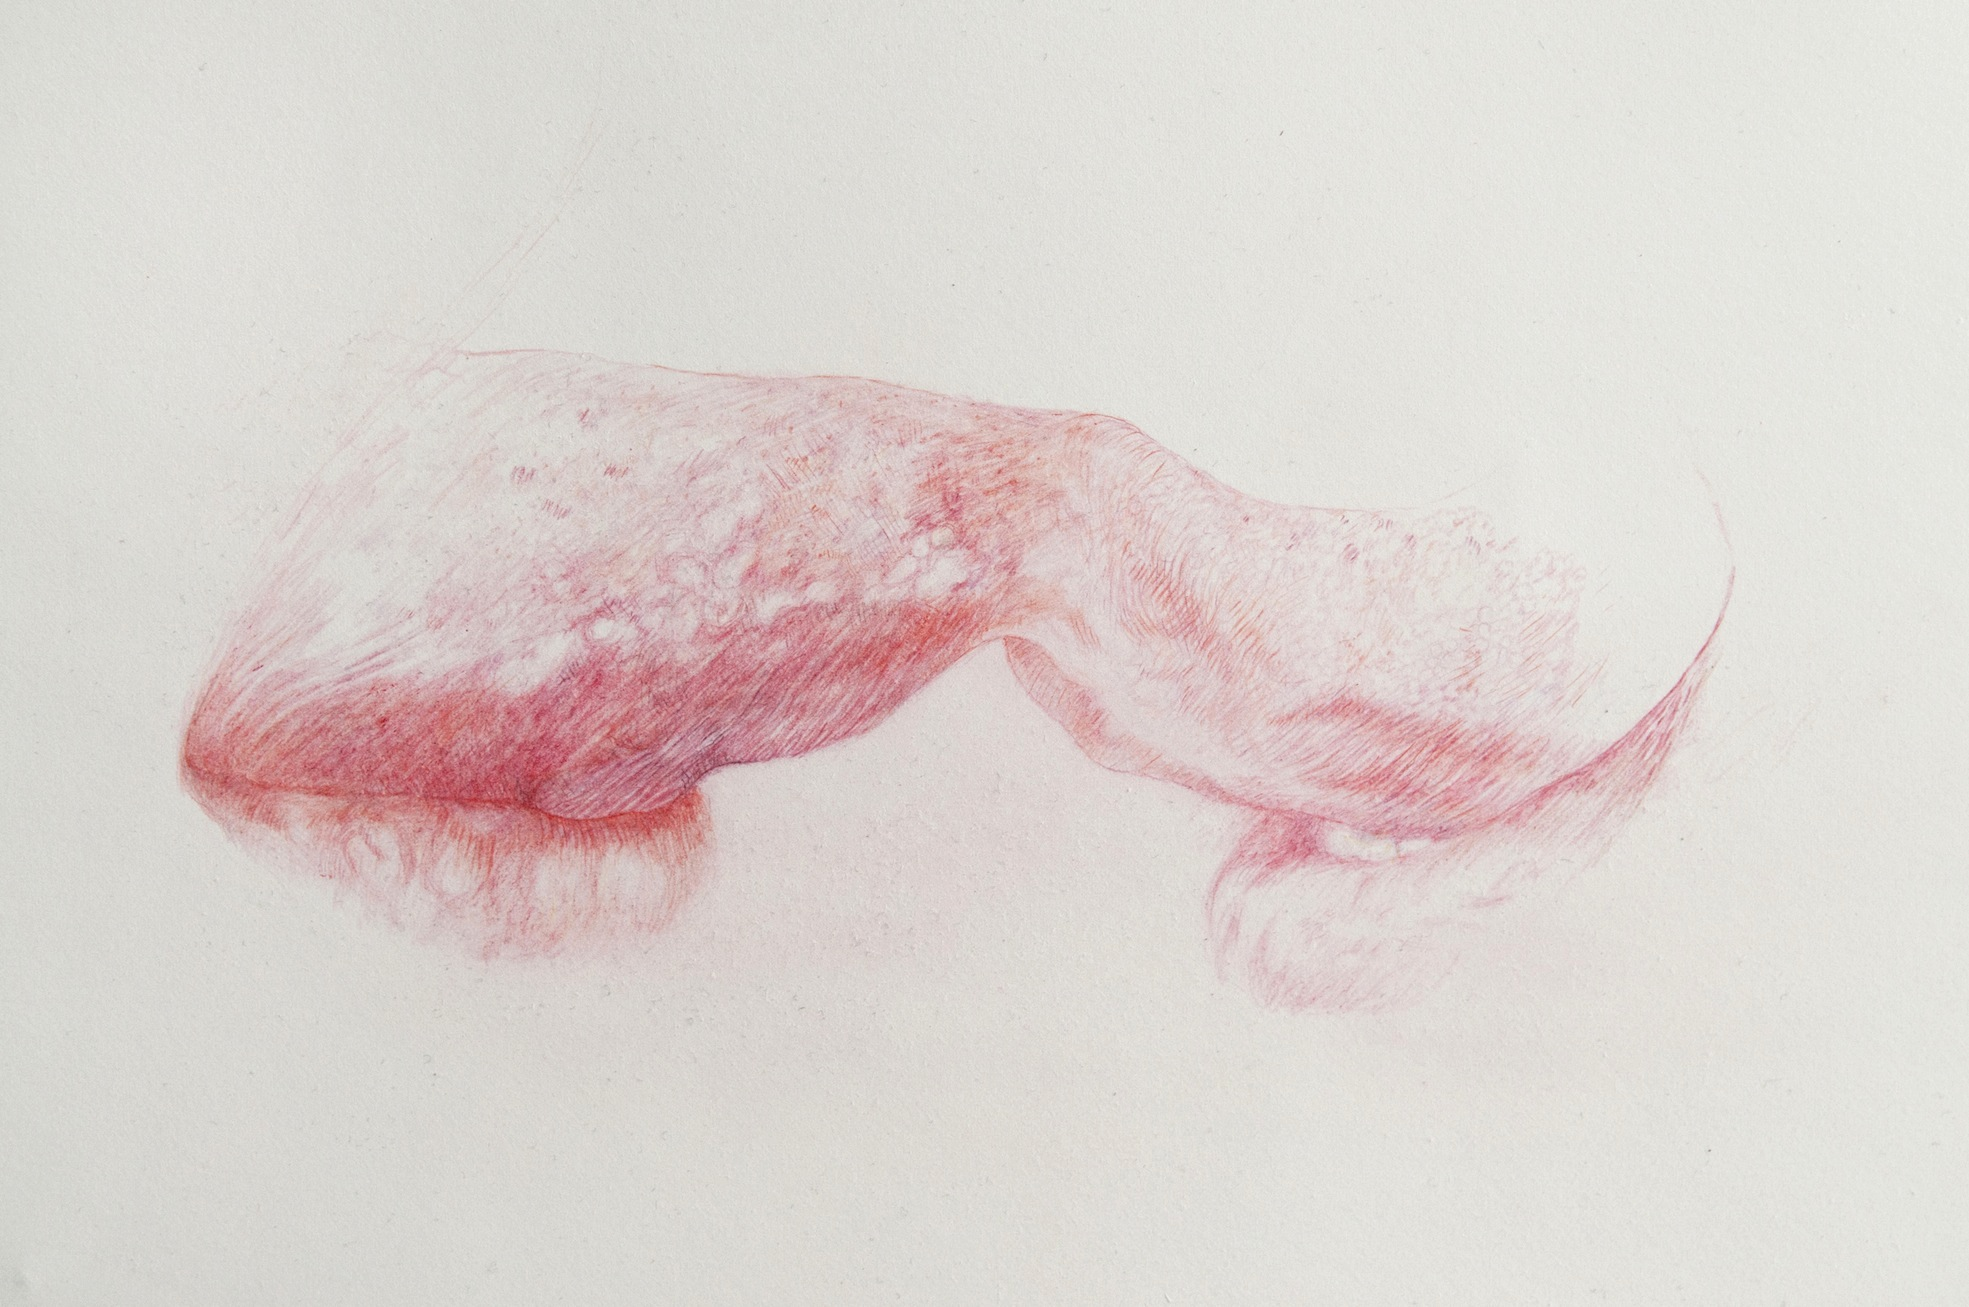 Lick, coloured pencil on paper, 56 x 61 cm, 2012 (detail)